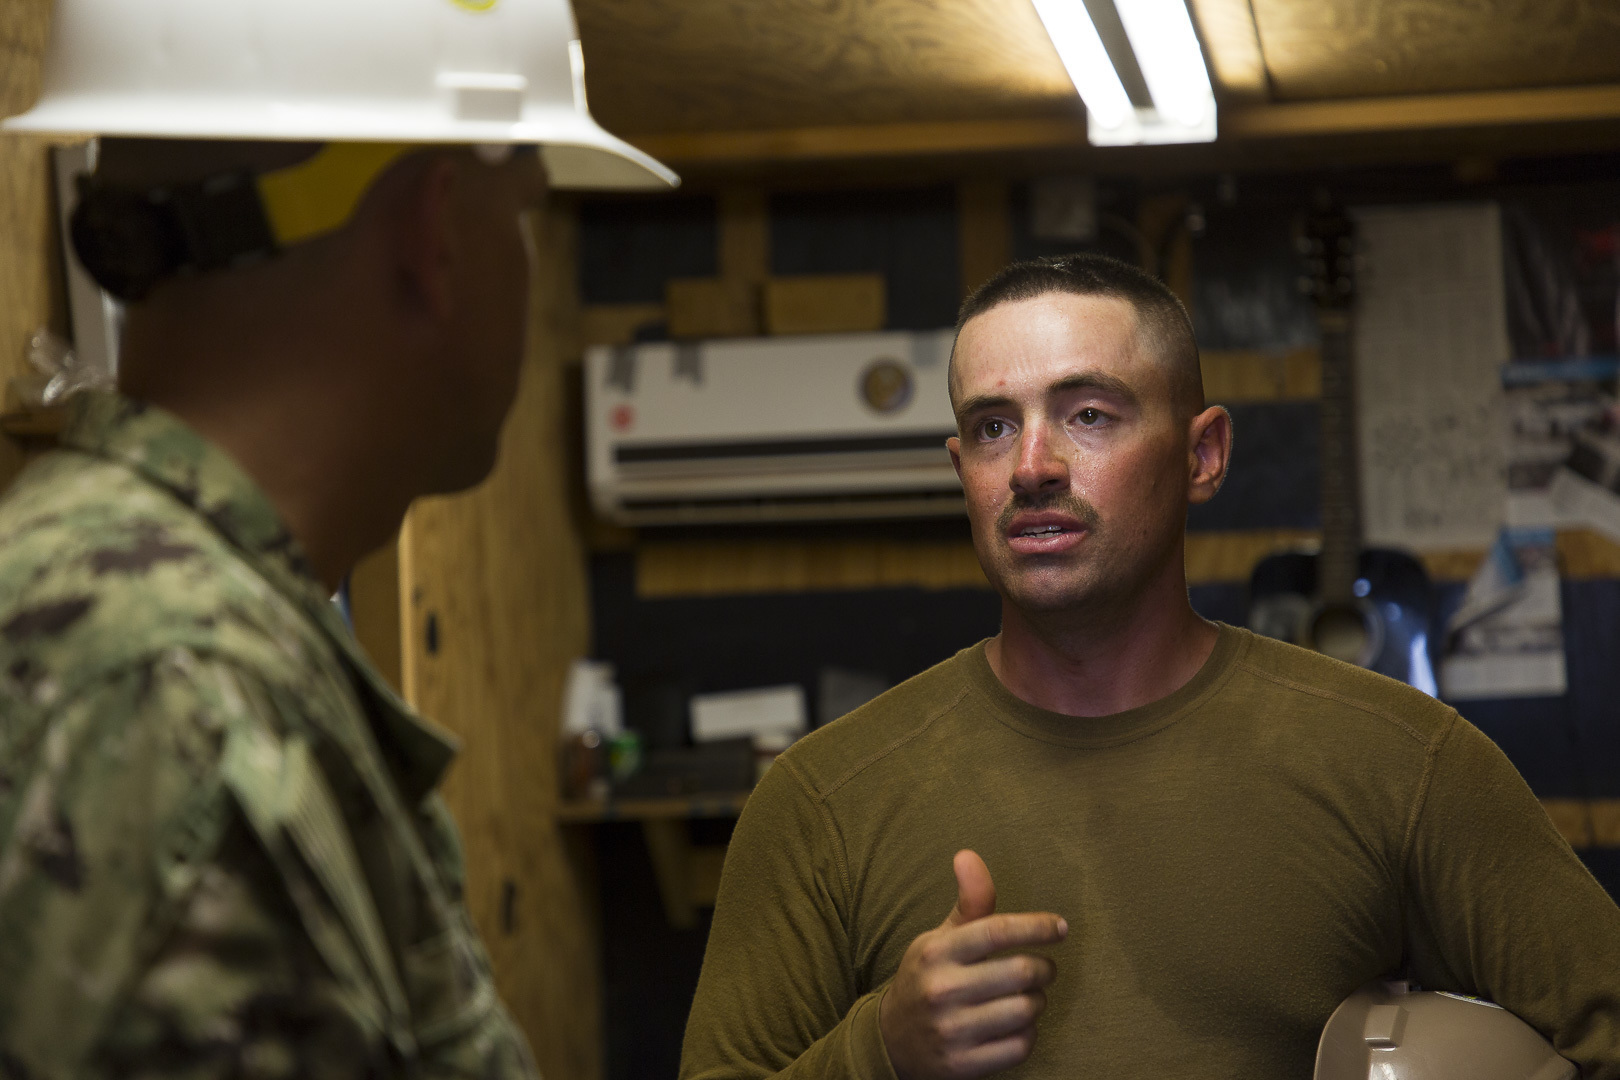 U.S. Navy Builder 2nd Class Erik Rau a Seabee assigned to Naval Mobile Construction Battalion 1 (NMCB 1) briefs Civil Engineer Corps Cmdr. Michael Meno on current on site berthing conditions in Ali Oune, Djibouti, Sept. 19, 2018. Seabees with NMCB 1 Detachment Horn of Africa are building a medical facility in Ali Oune in support of the Ministry of Health for Djibouti. (U.S. Air National Guard photo by Master Sgt. Andrew Sinclair)